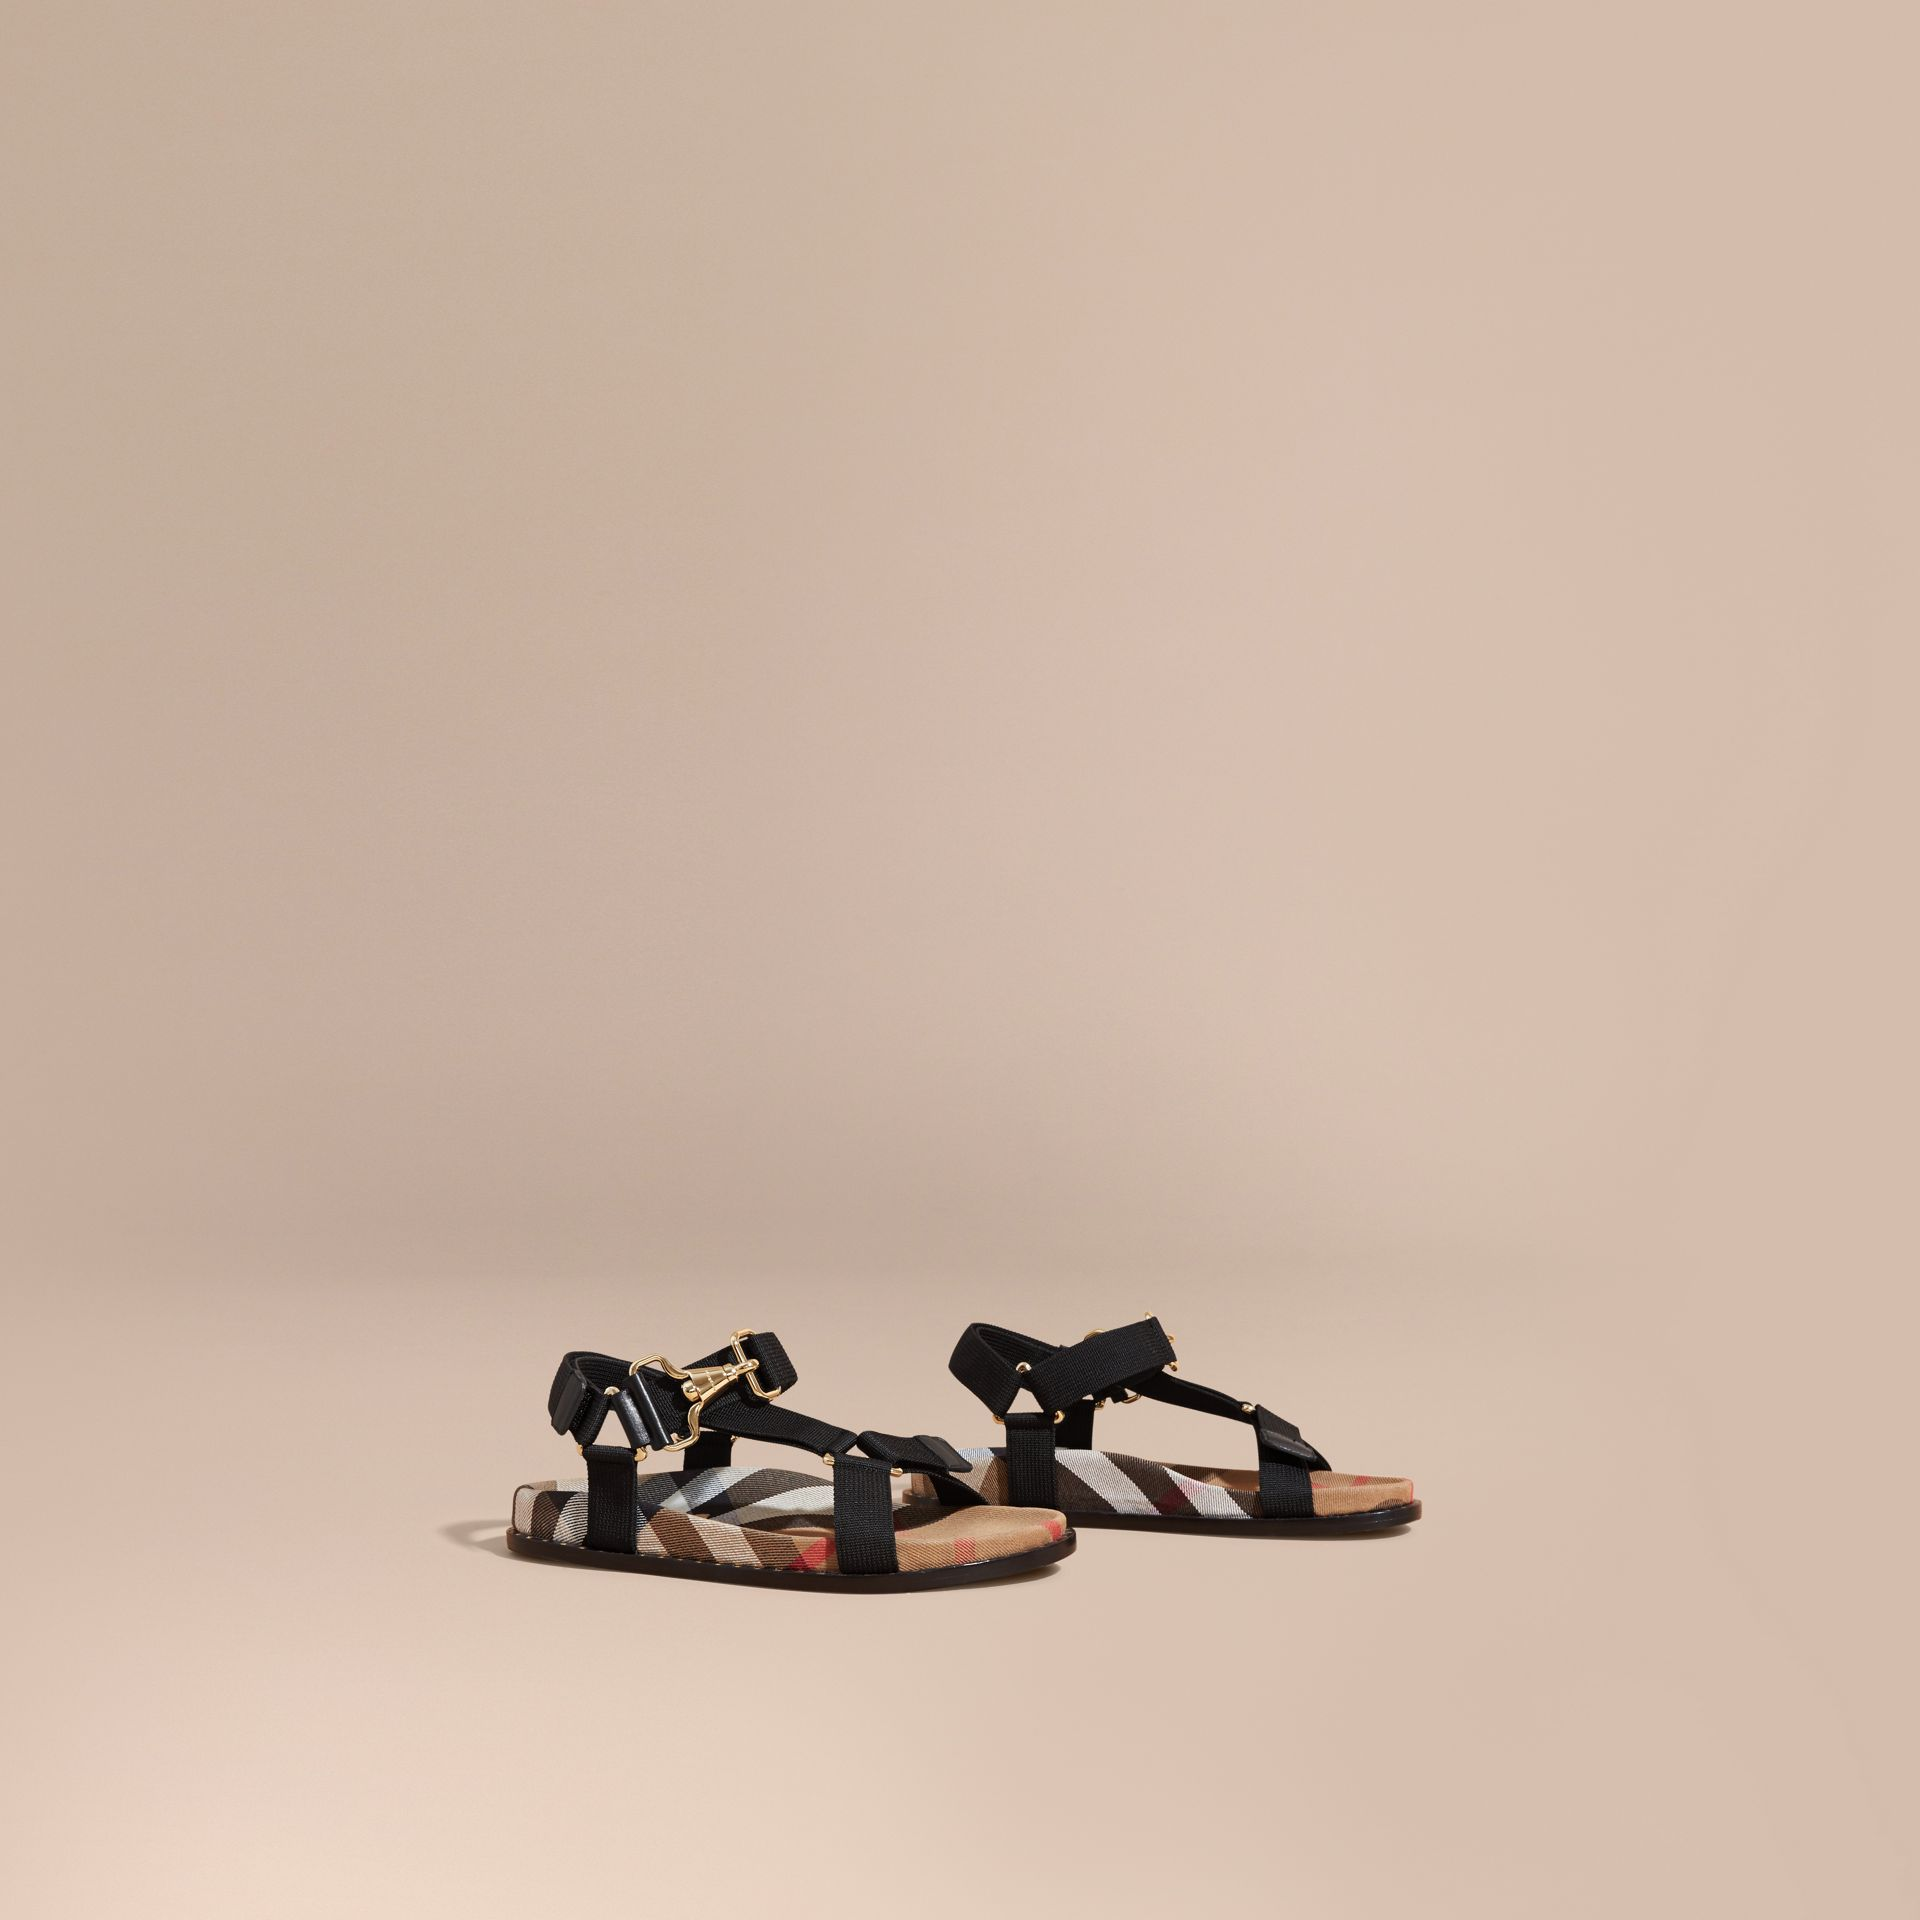 House Check Strappy Sandals with Hardware Detail in Black - Women | Burberry Hong Kong - gallery image 1